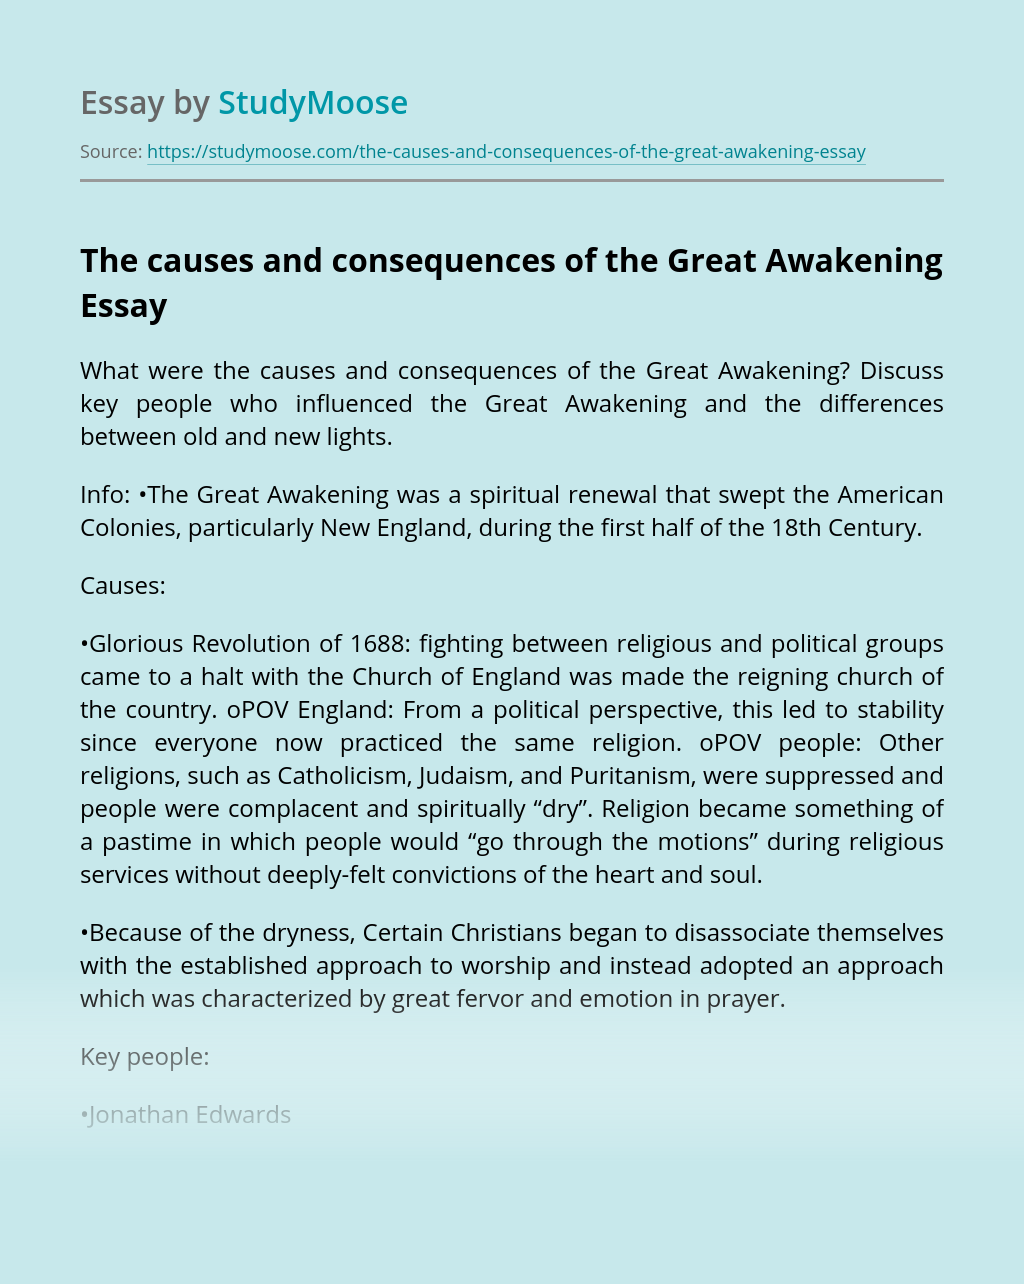 The causes and consequences of the Great Awakening